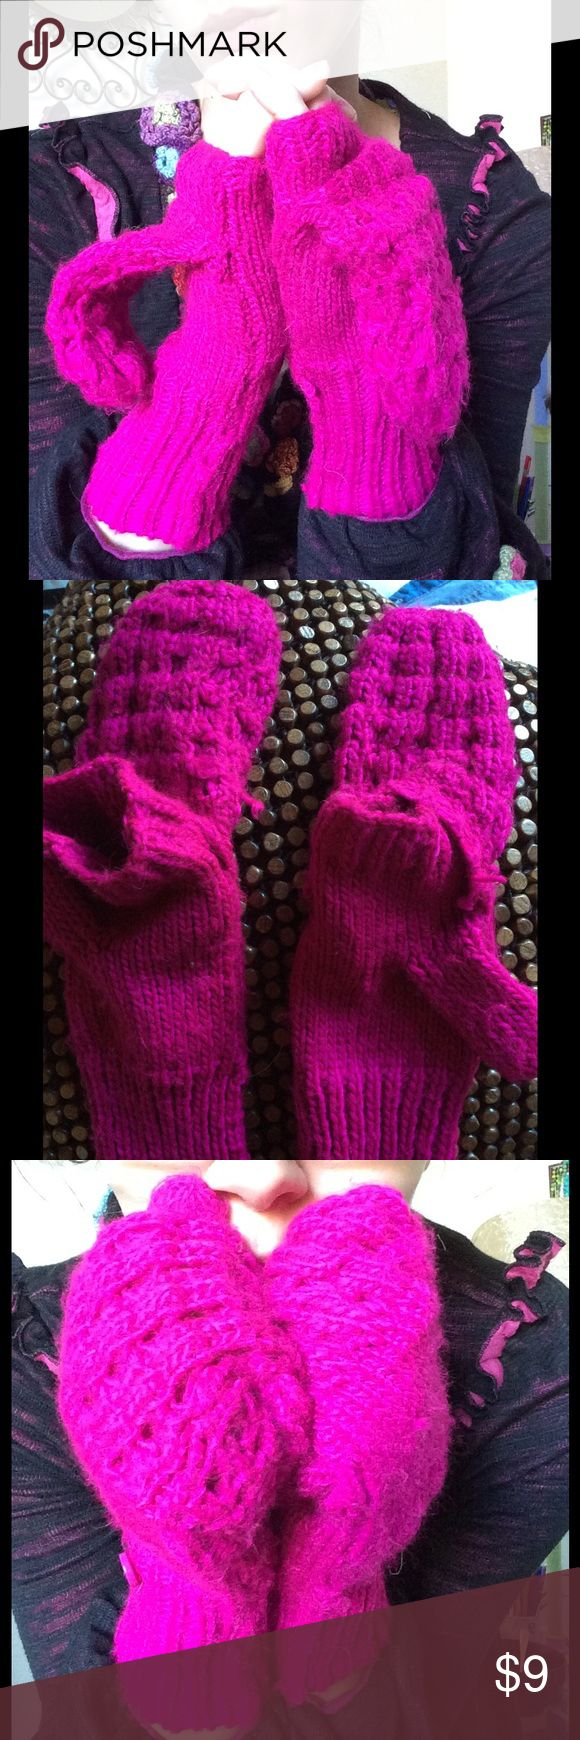 Fuscia Chilly Weather Mittens Knit Finger Hood Good condition. Smoke free home. No stains, rips or holes. Cute and cozy. Fun for road trip Gypsy travels. Bright color. Old Navy Accessories Gloves & Mittens